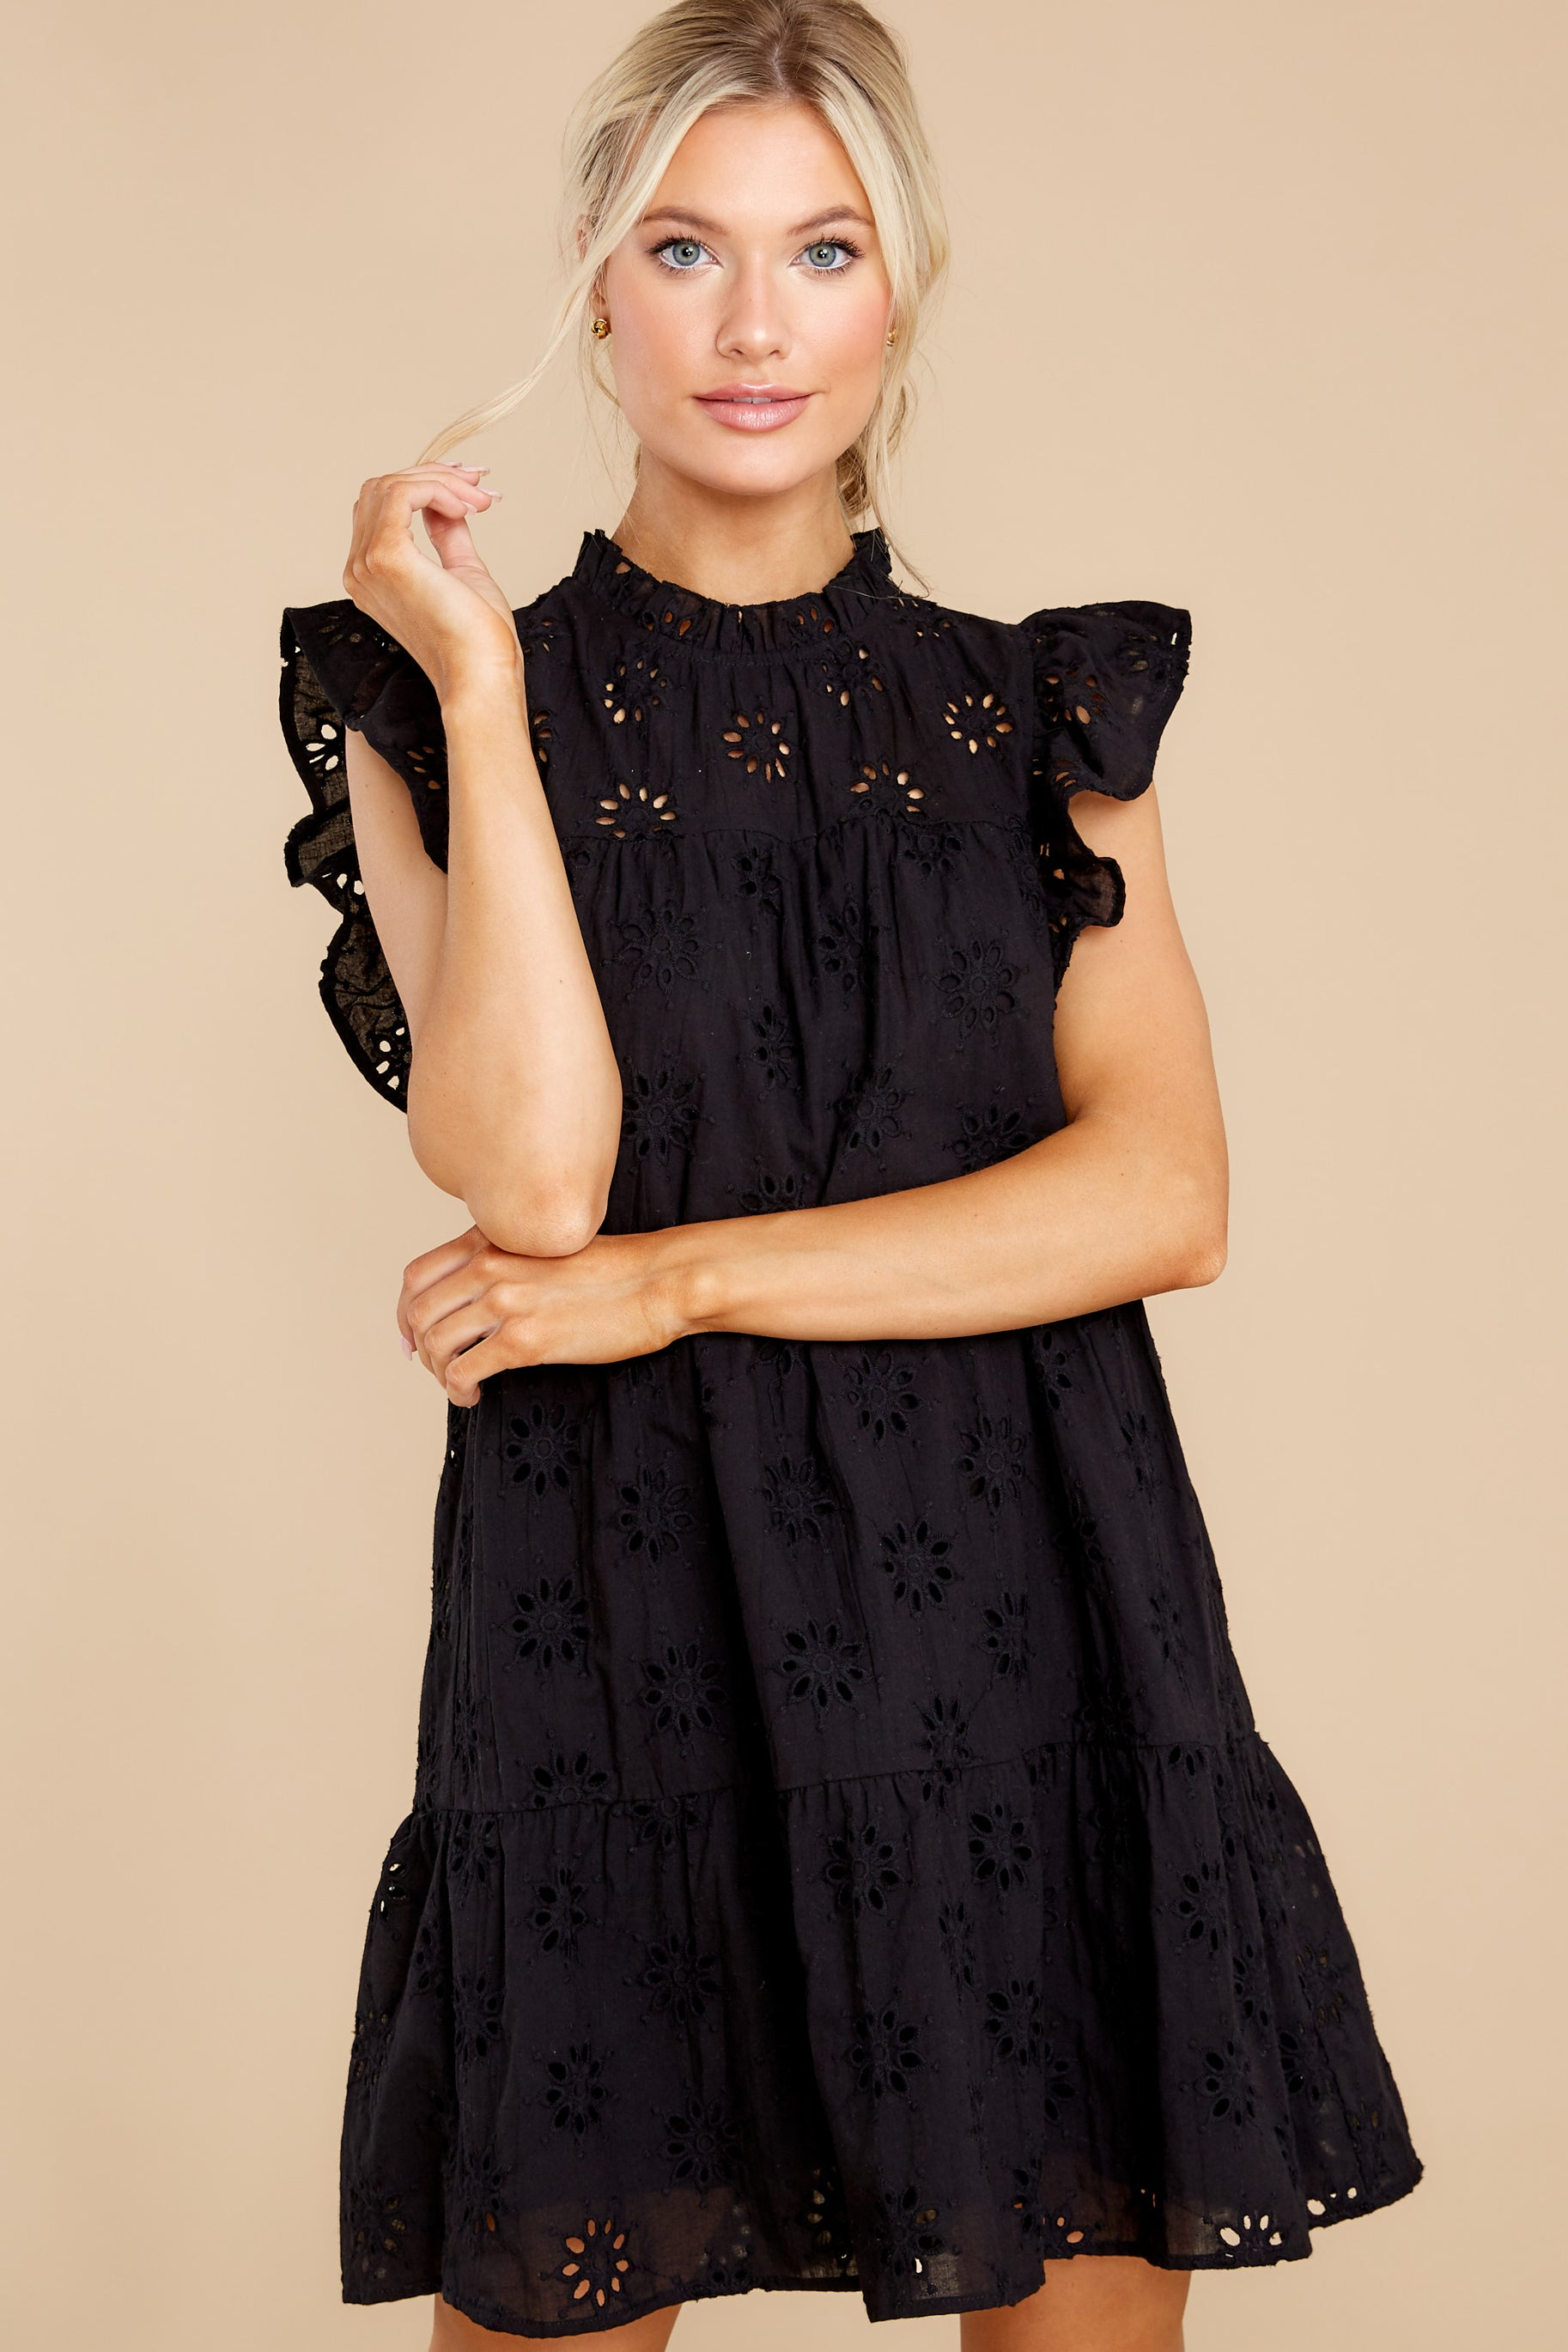 7 So Unreal Black Dress at reddress.com